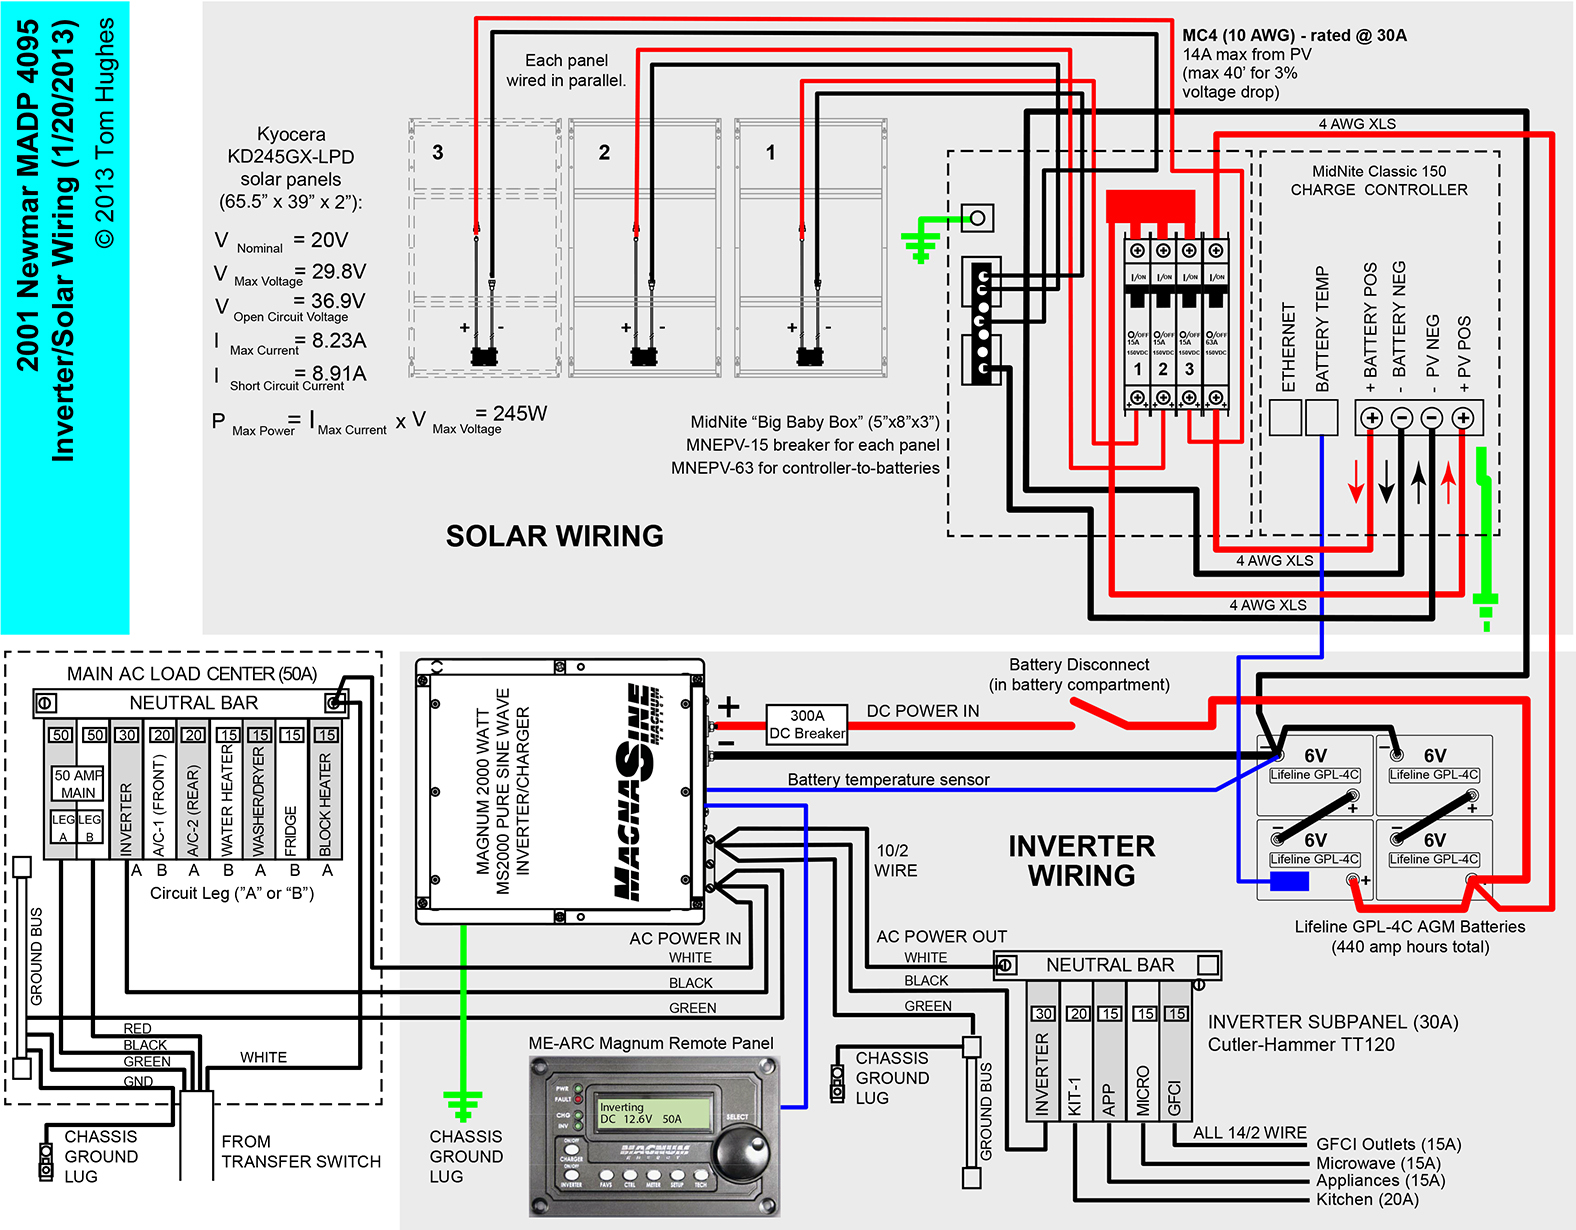 ms2000_newmar_inverter_wiring_01_20_2013 rv inverter diagram rv inverter transfer switch \u2022 wiring diagrams rv transfer switch wiring diagram at fashall.co